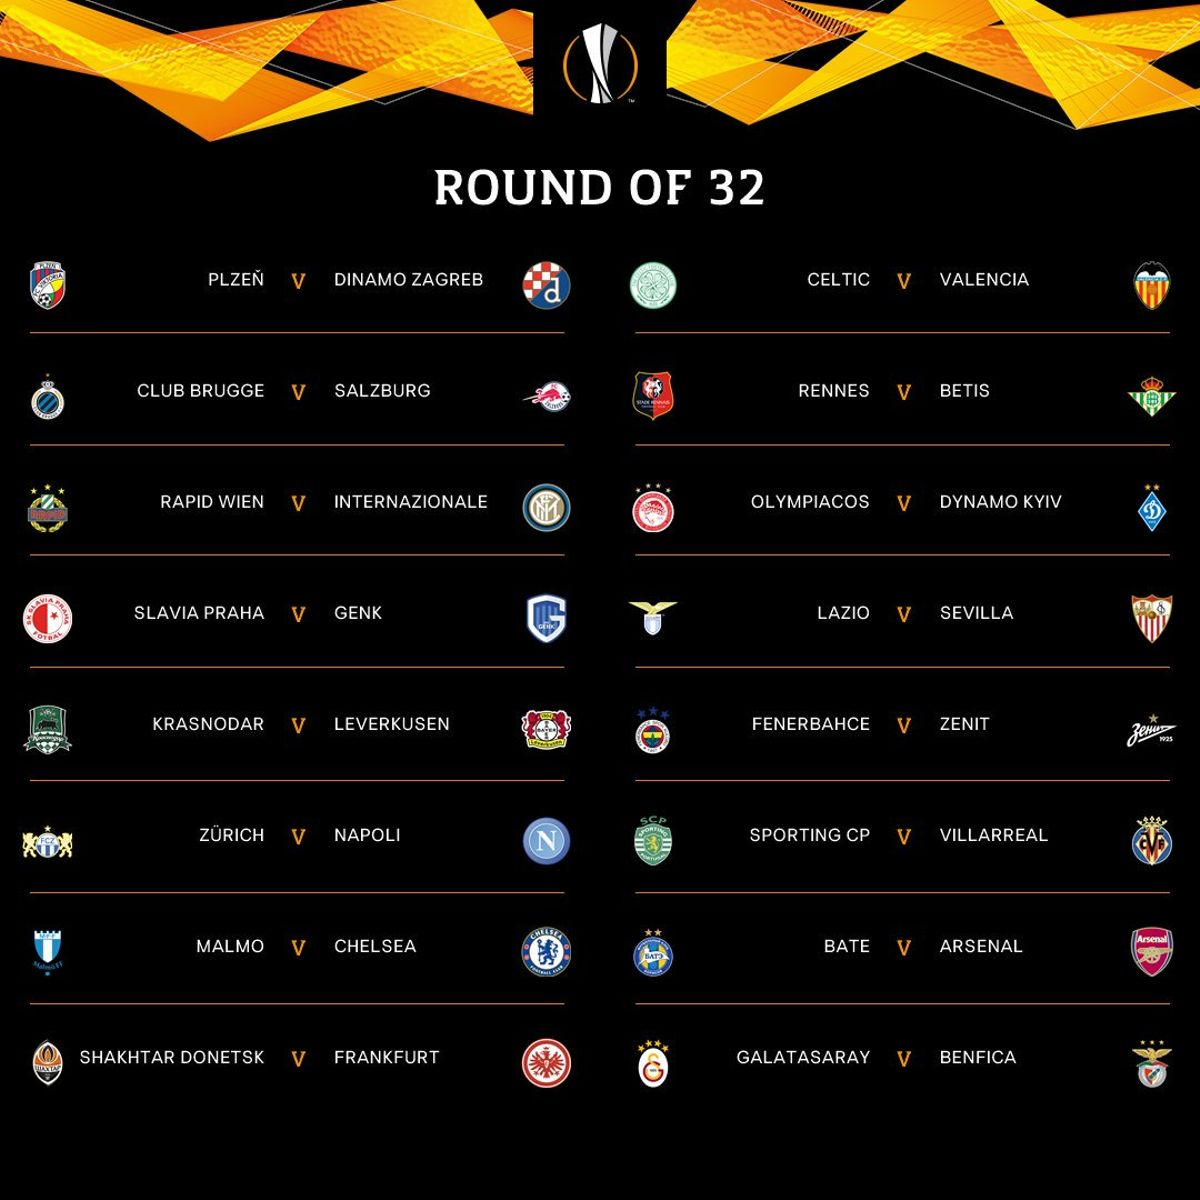 Europa League round of 32 match predictions